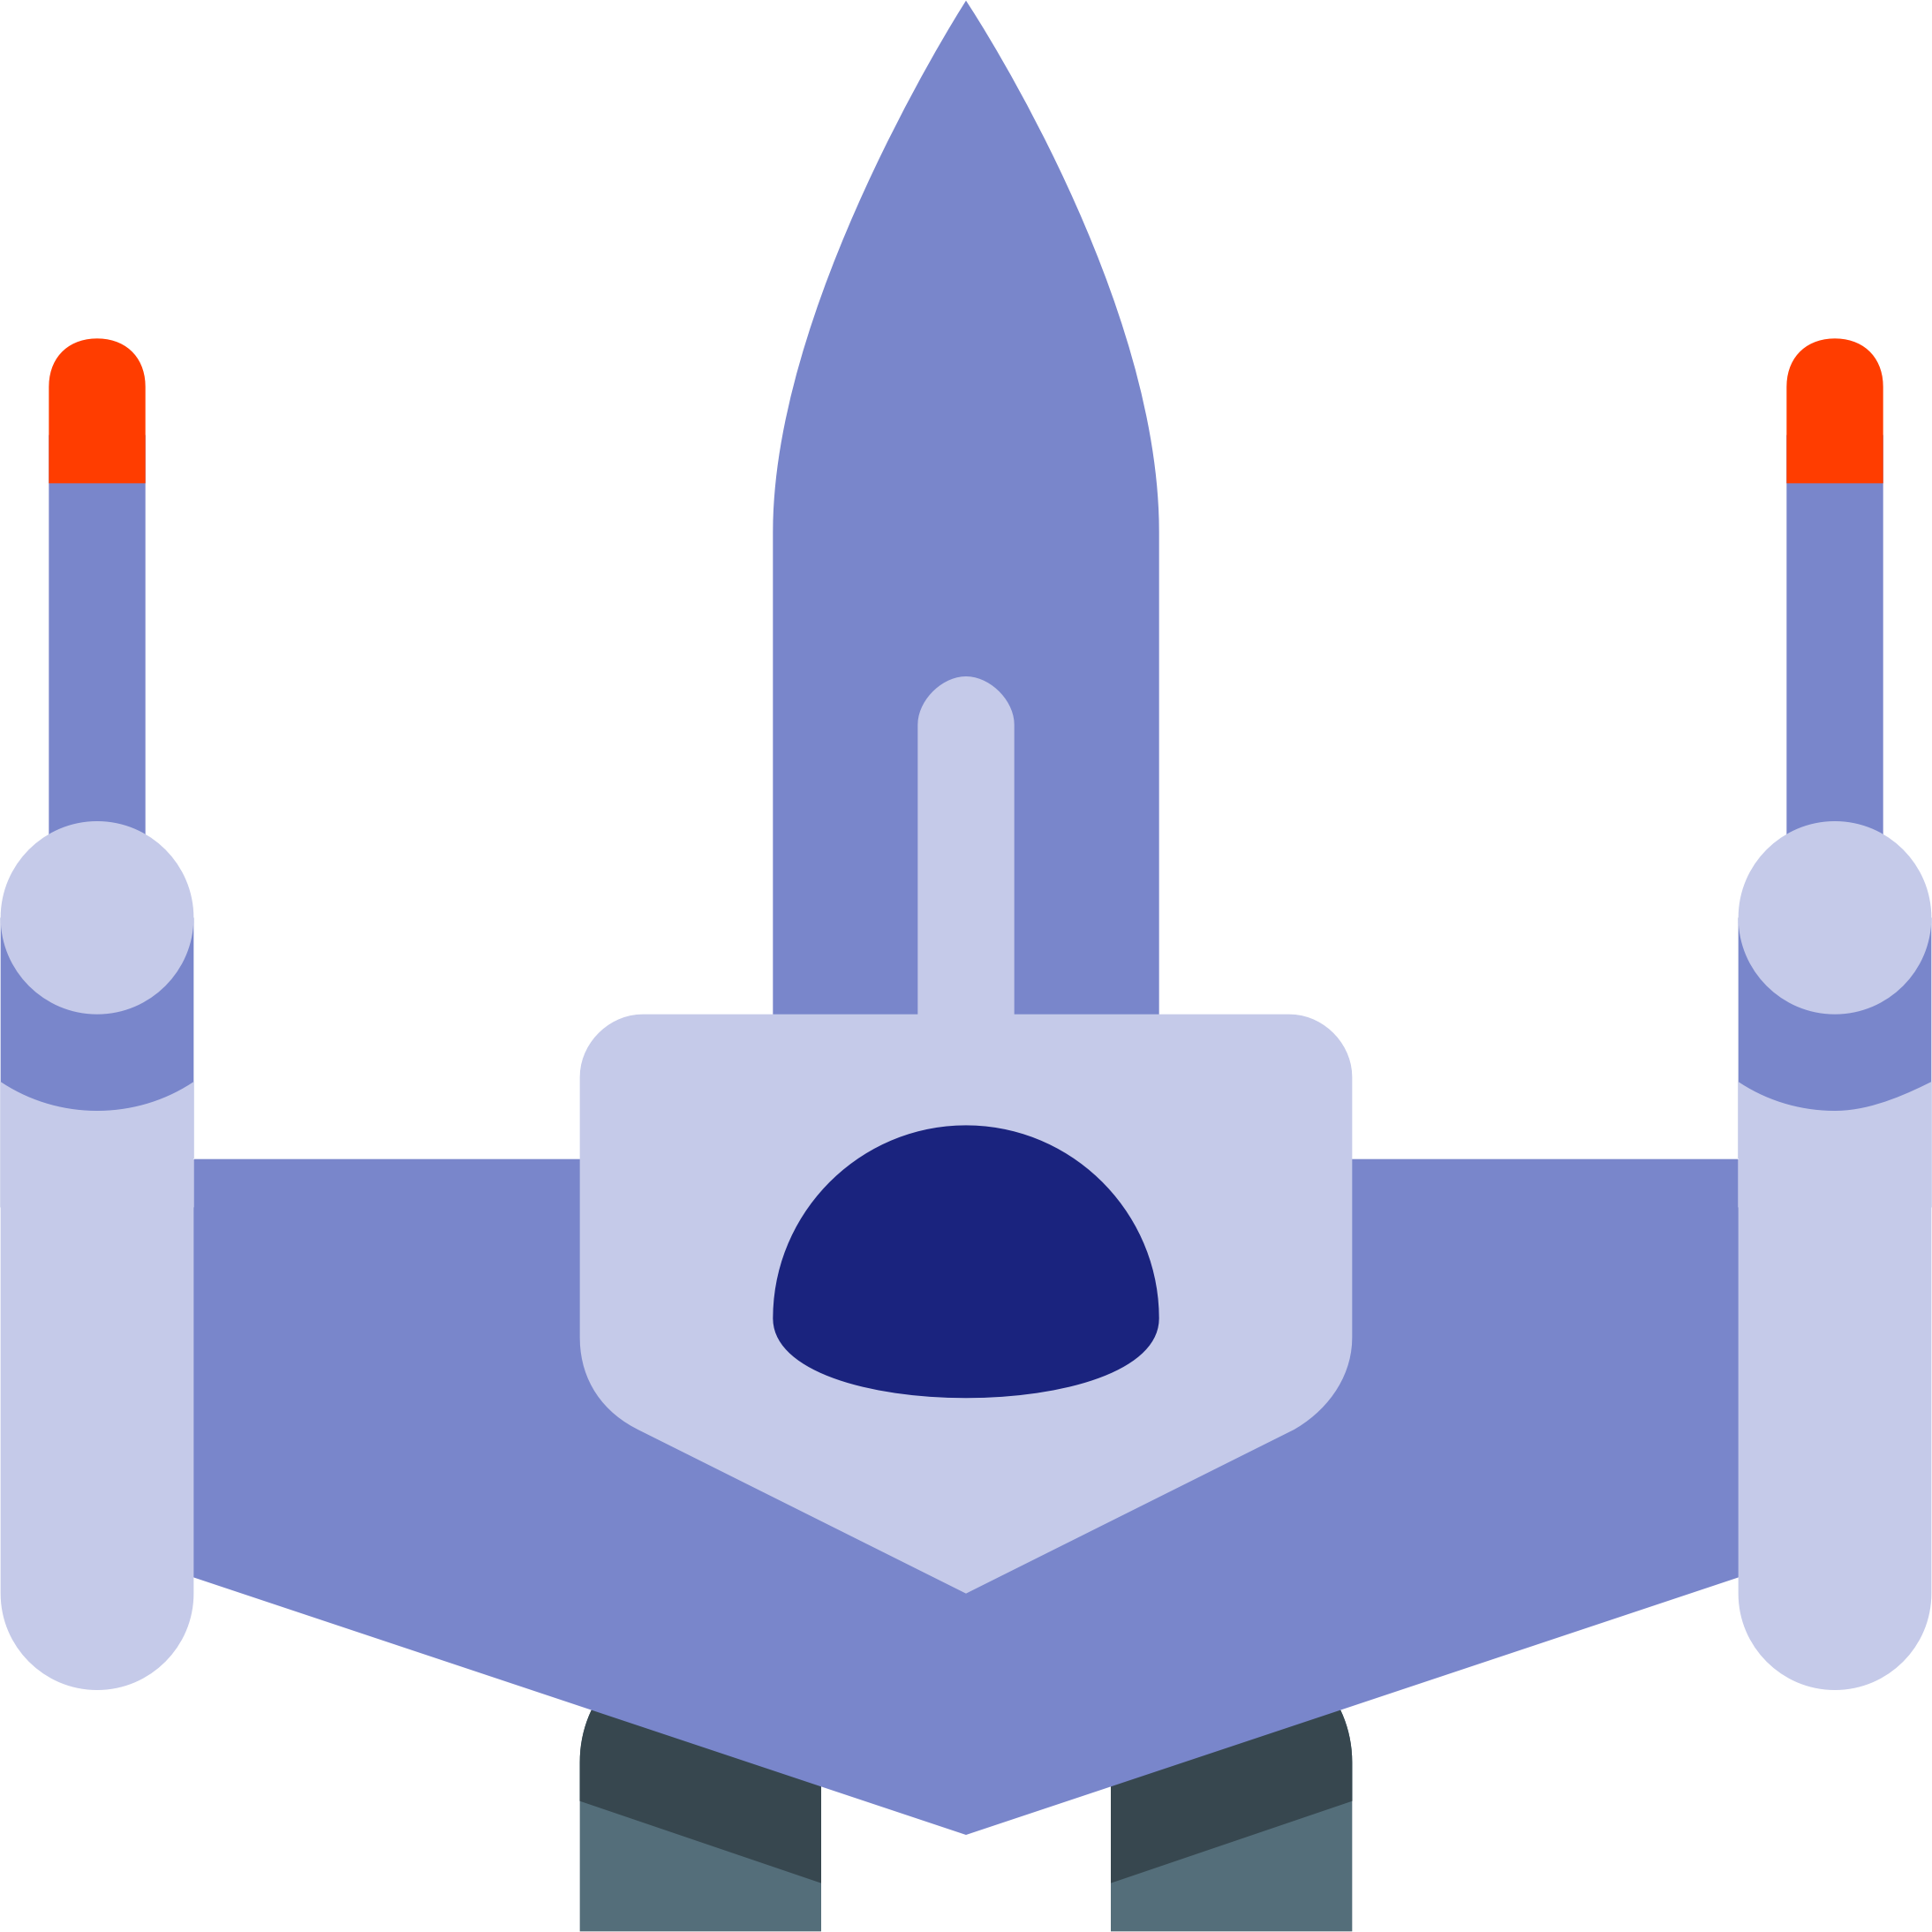 Space Fighter by Designer.io